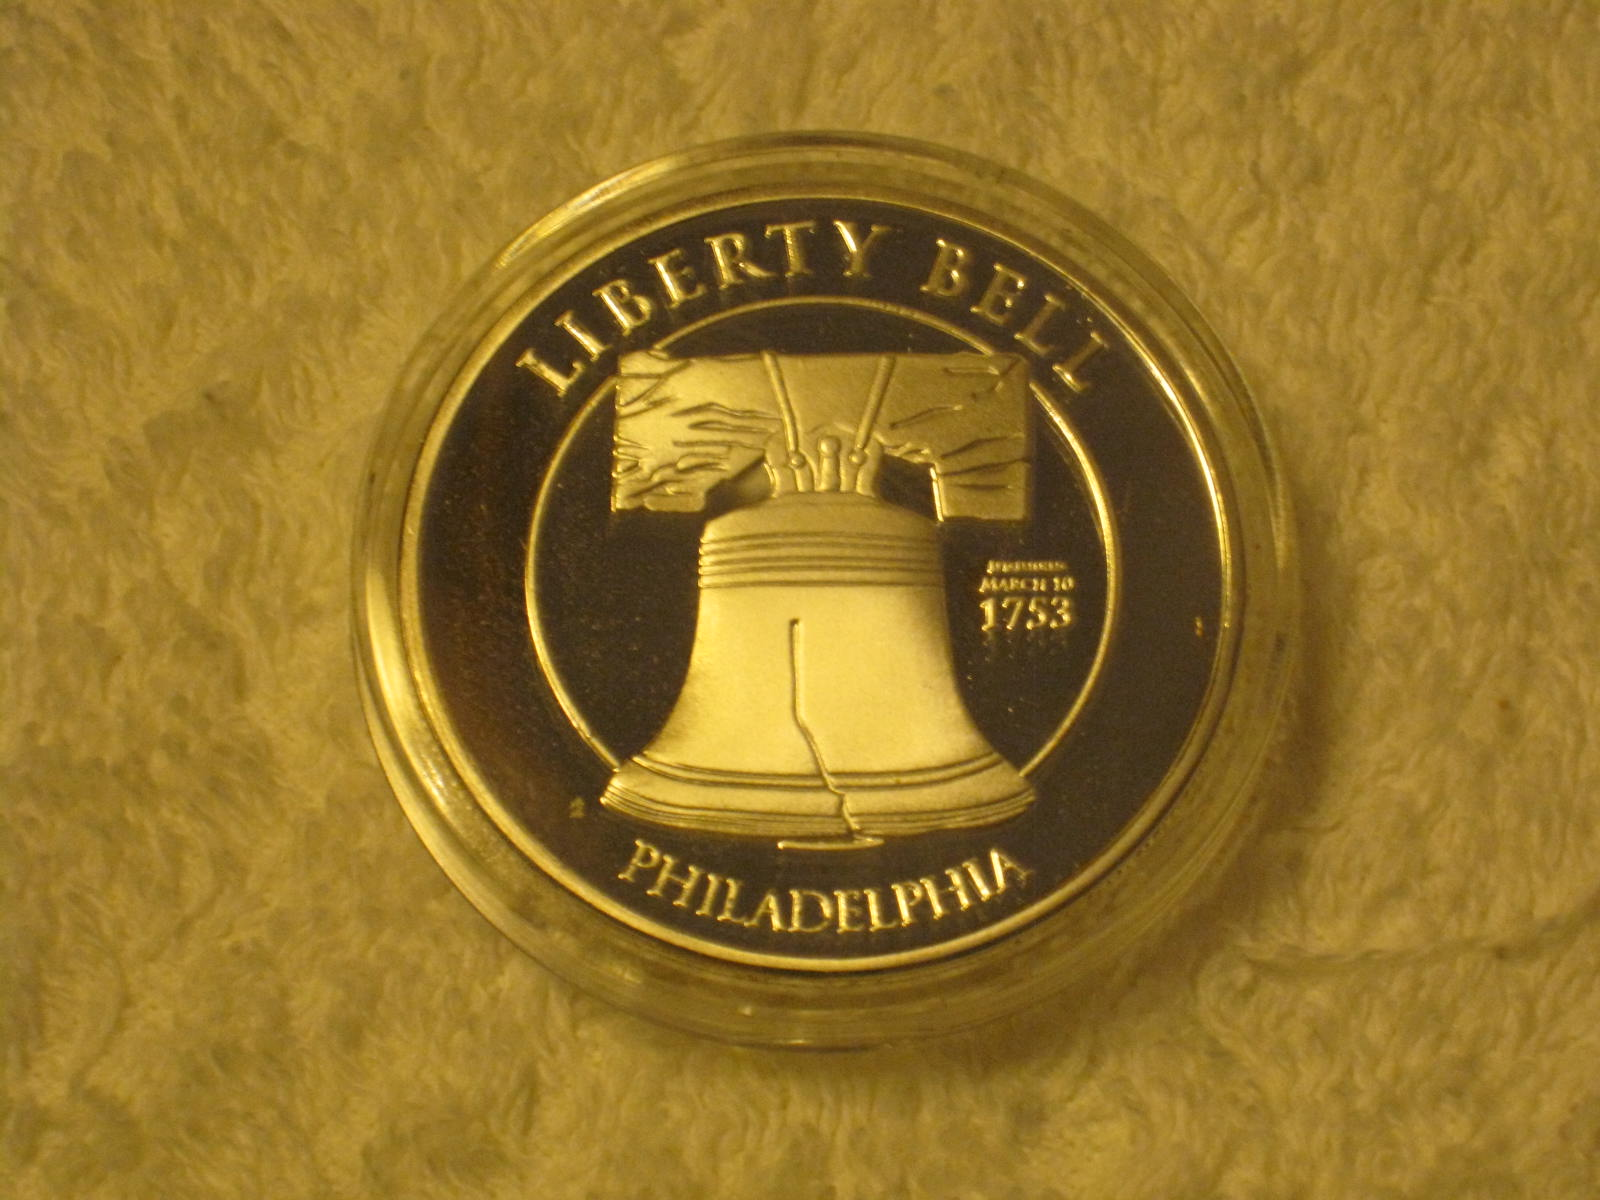 LIBERTY BELL INDEPENDENCE HALL SILVER COIN 1753